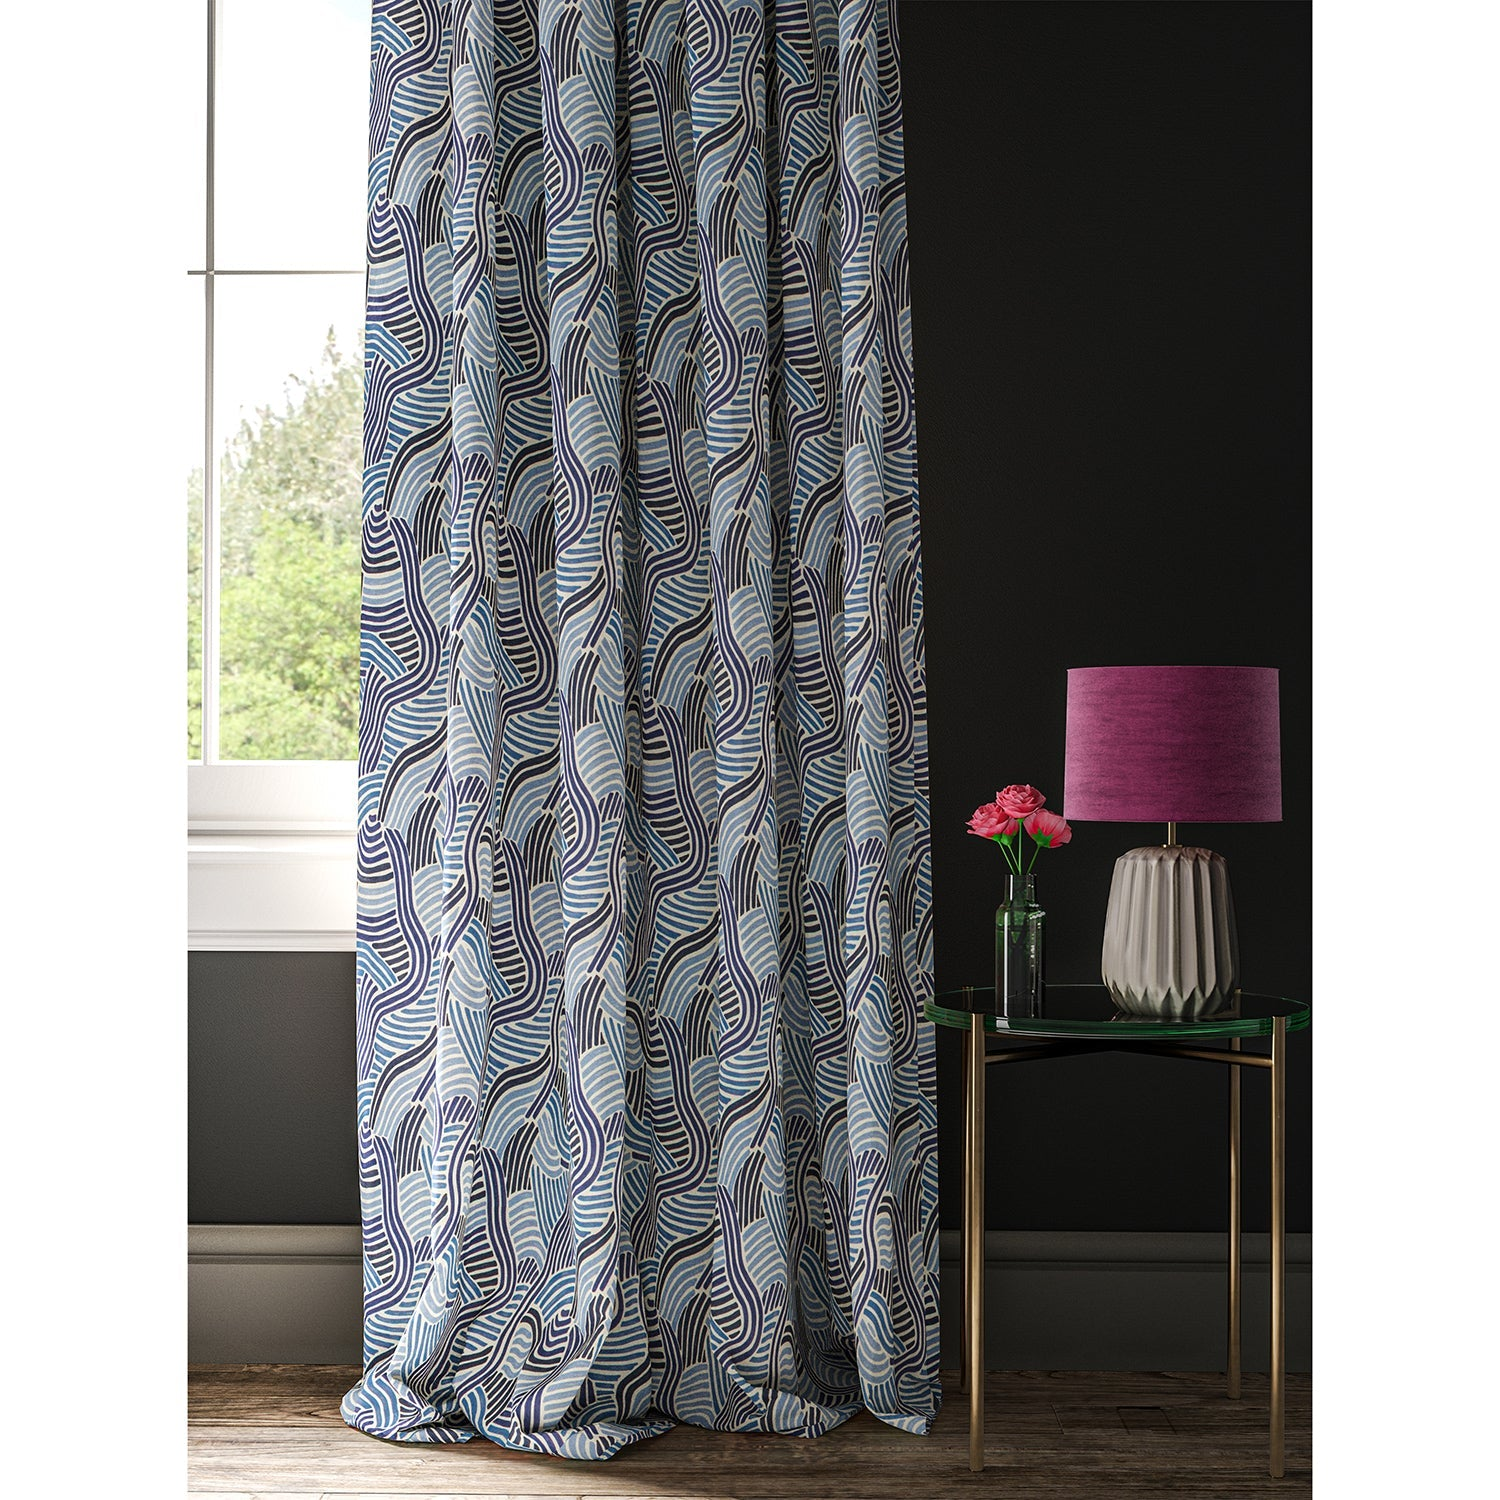 Curtain with a contemporary wavy blue design